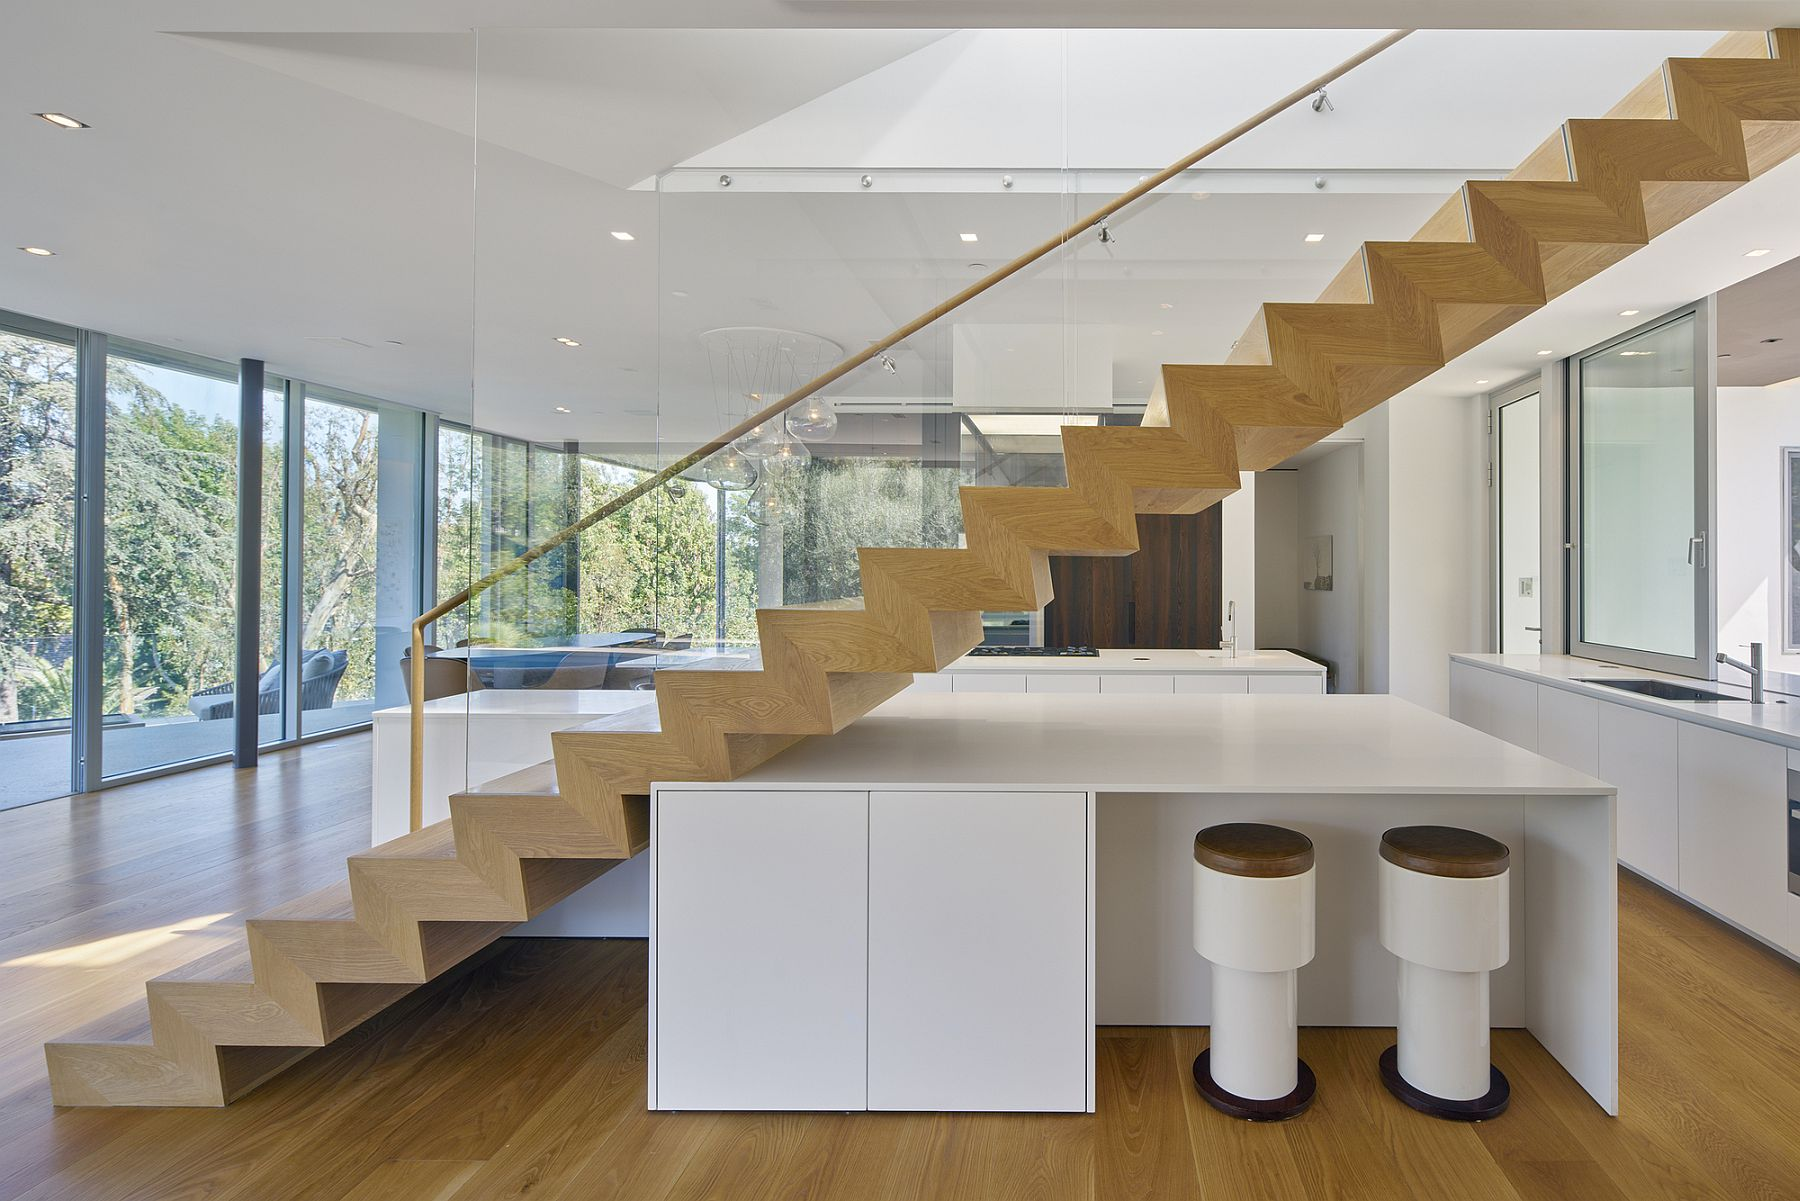 Sculptural staircase with smart island and breakfast zone underneath